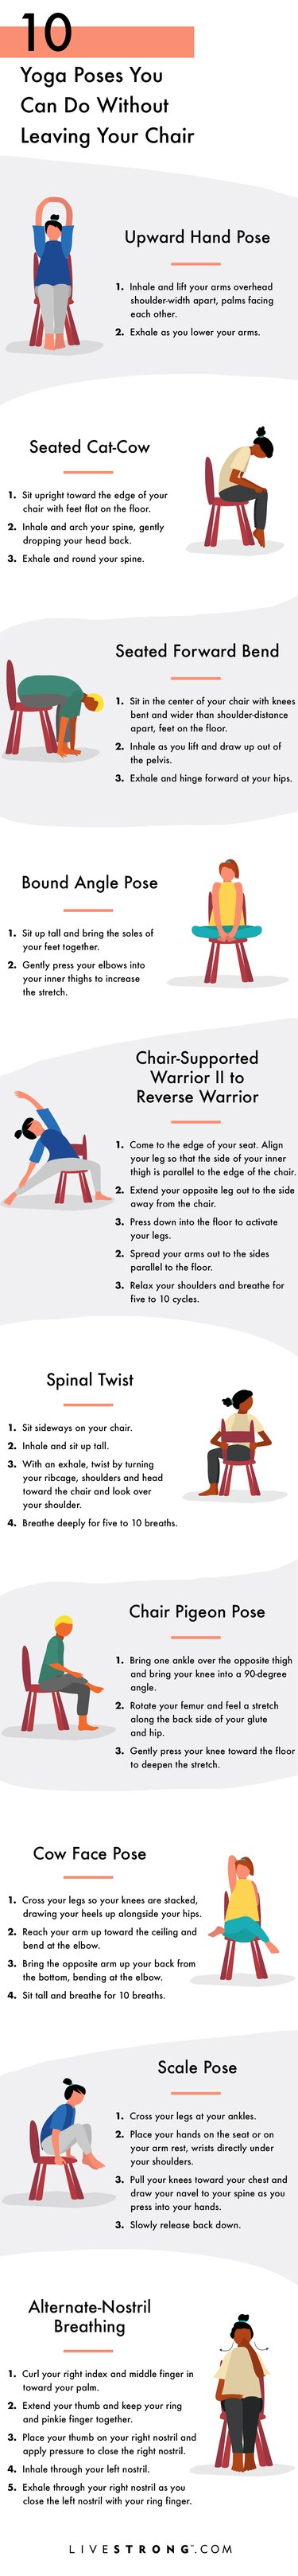 10 Yoga Poses You Can Do Without Leaving Your Chair graphic